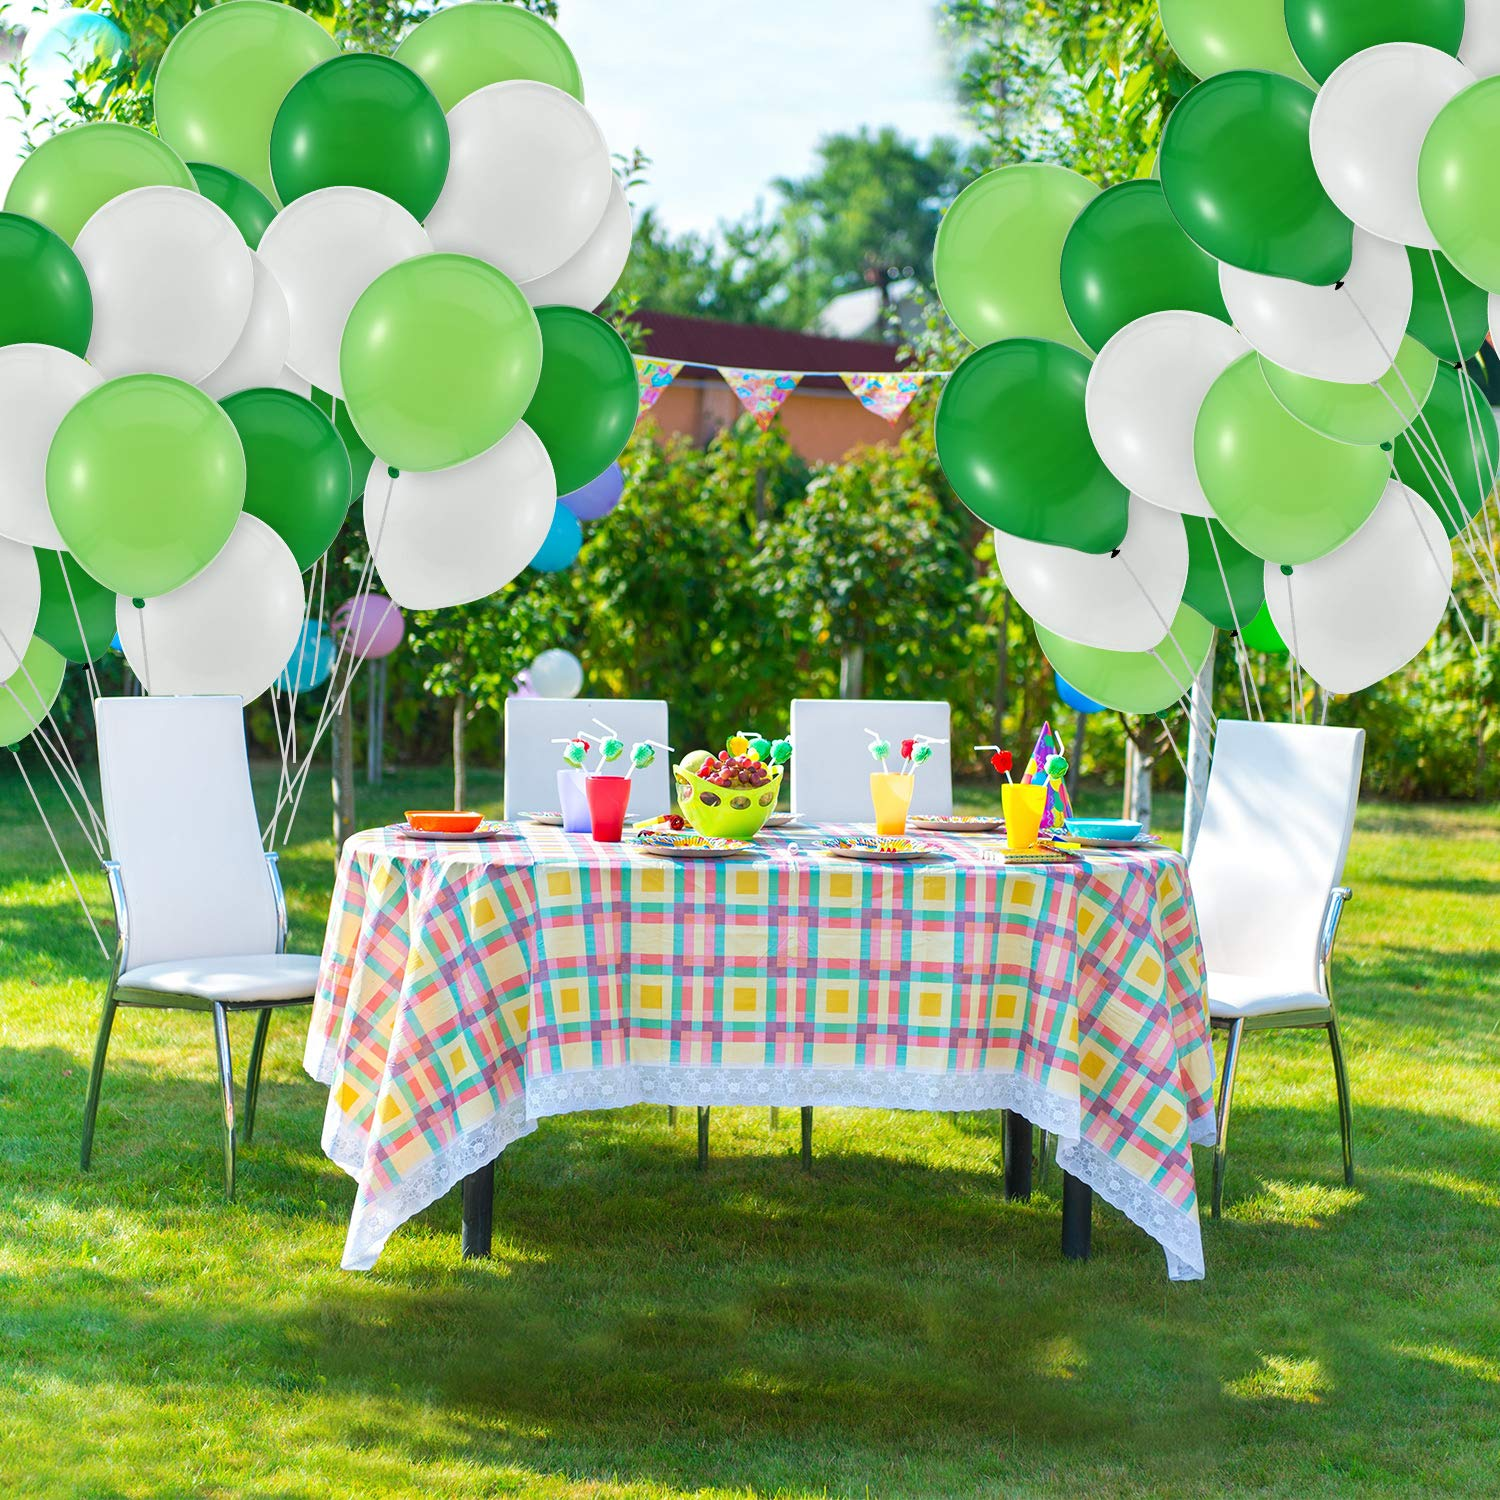 Amazon.com: 300 Pieces Green Balloons And White Green ...